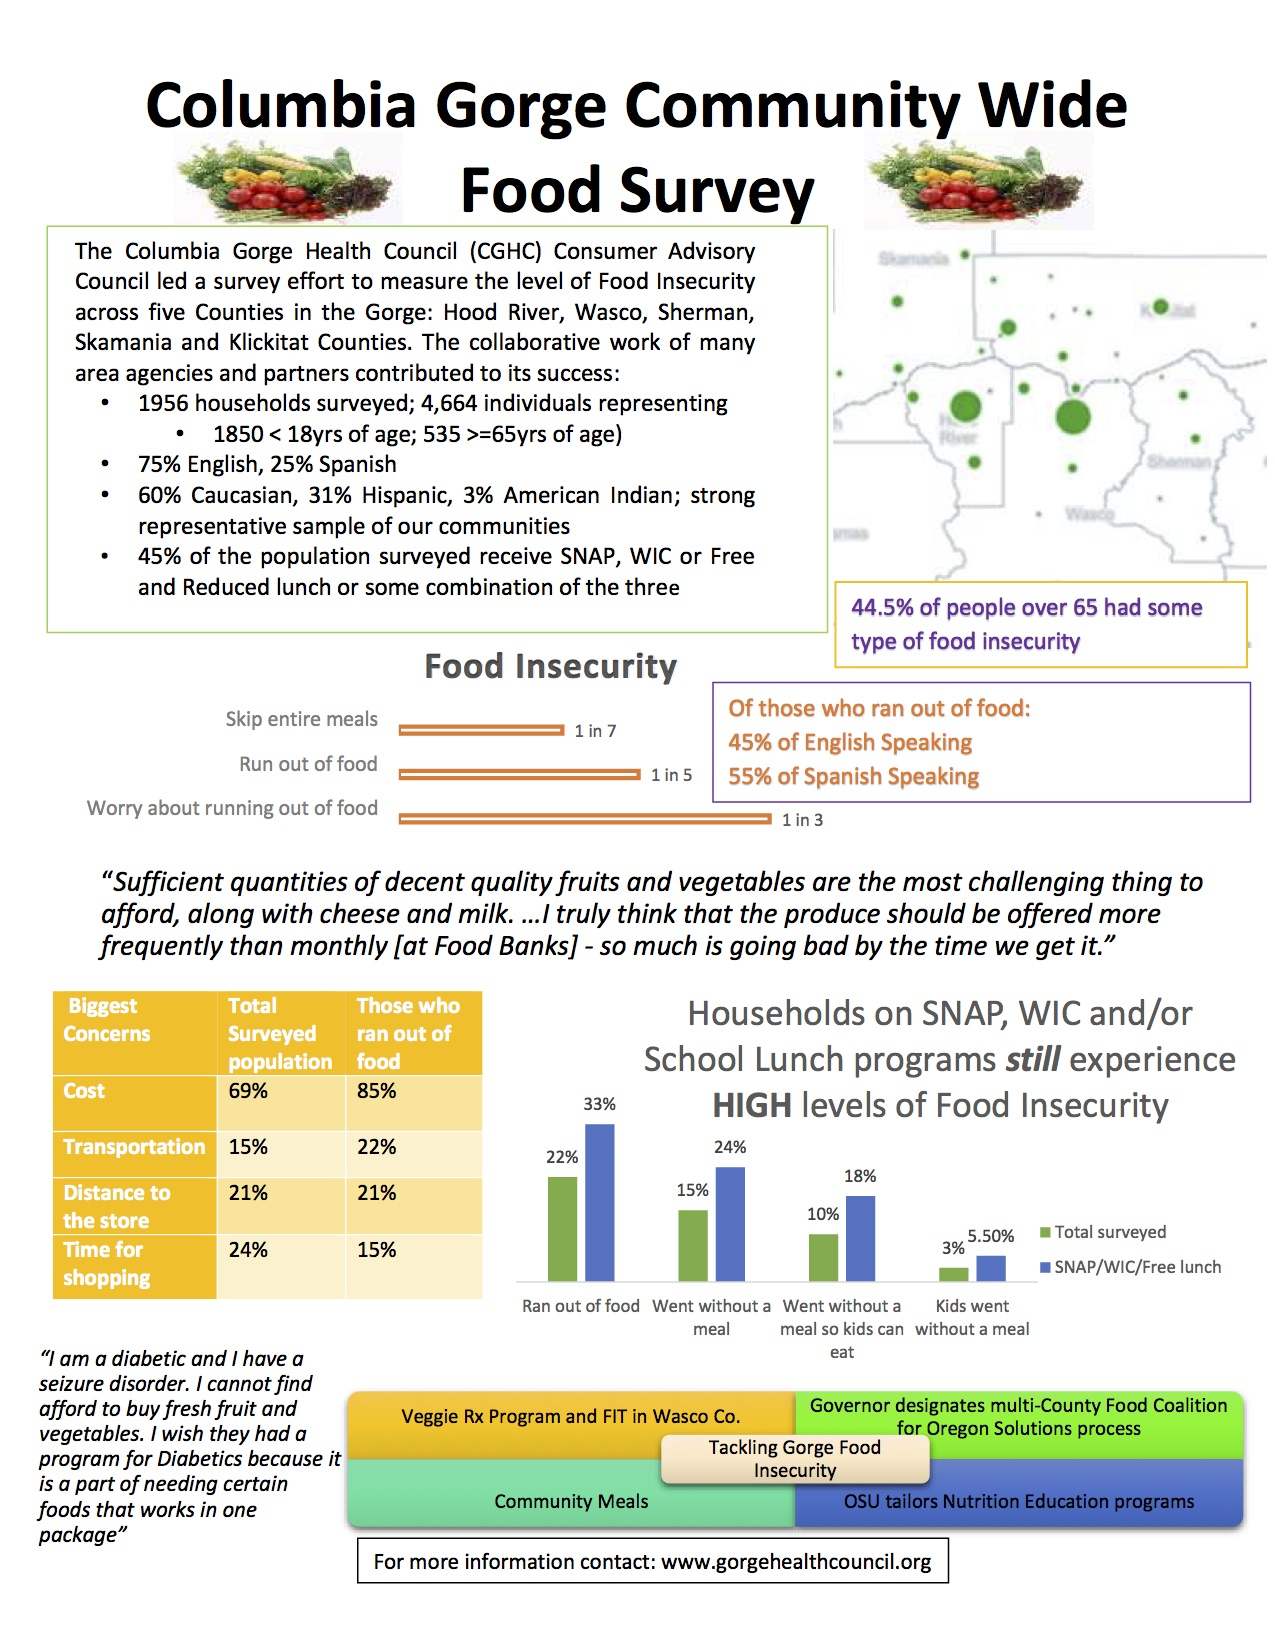 CGHC Food insecurity 1 pager FINAL.jpg